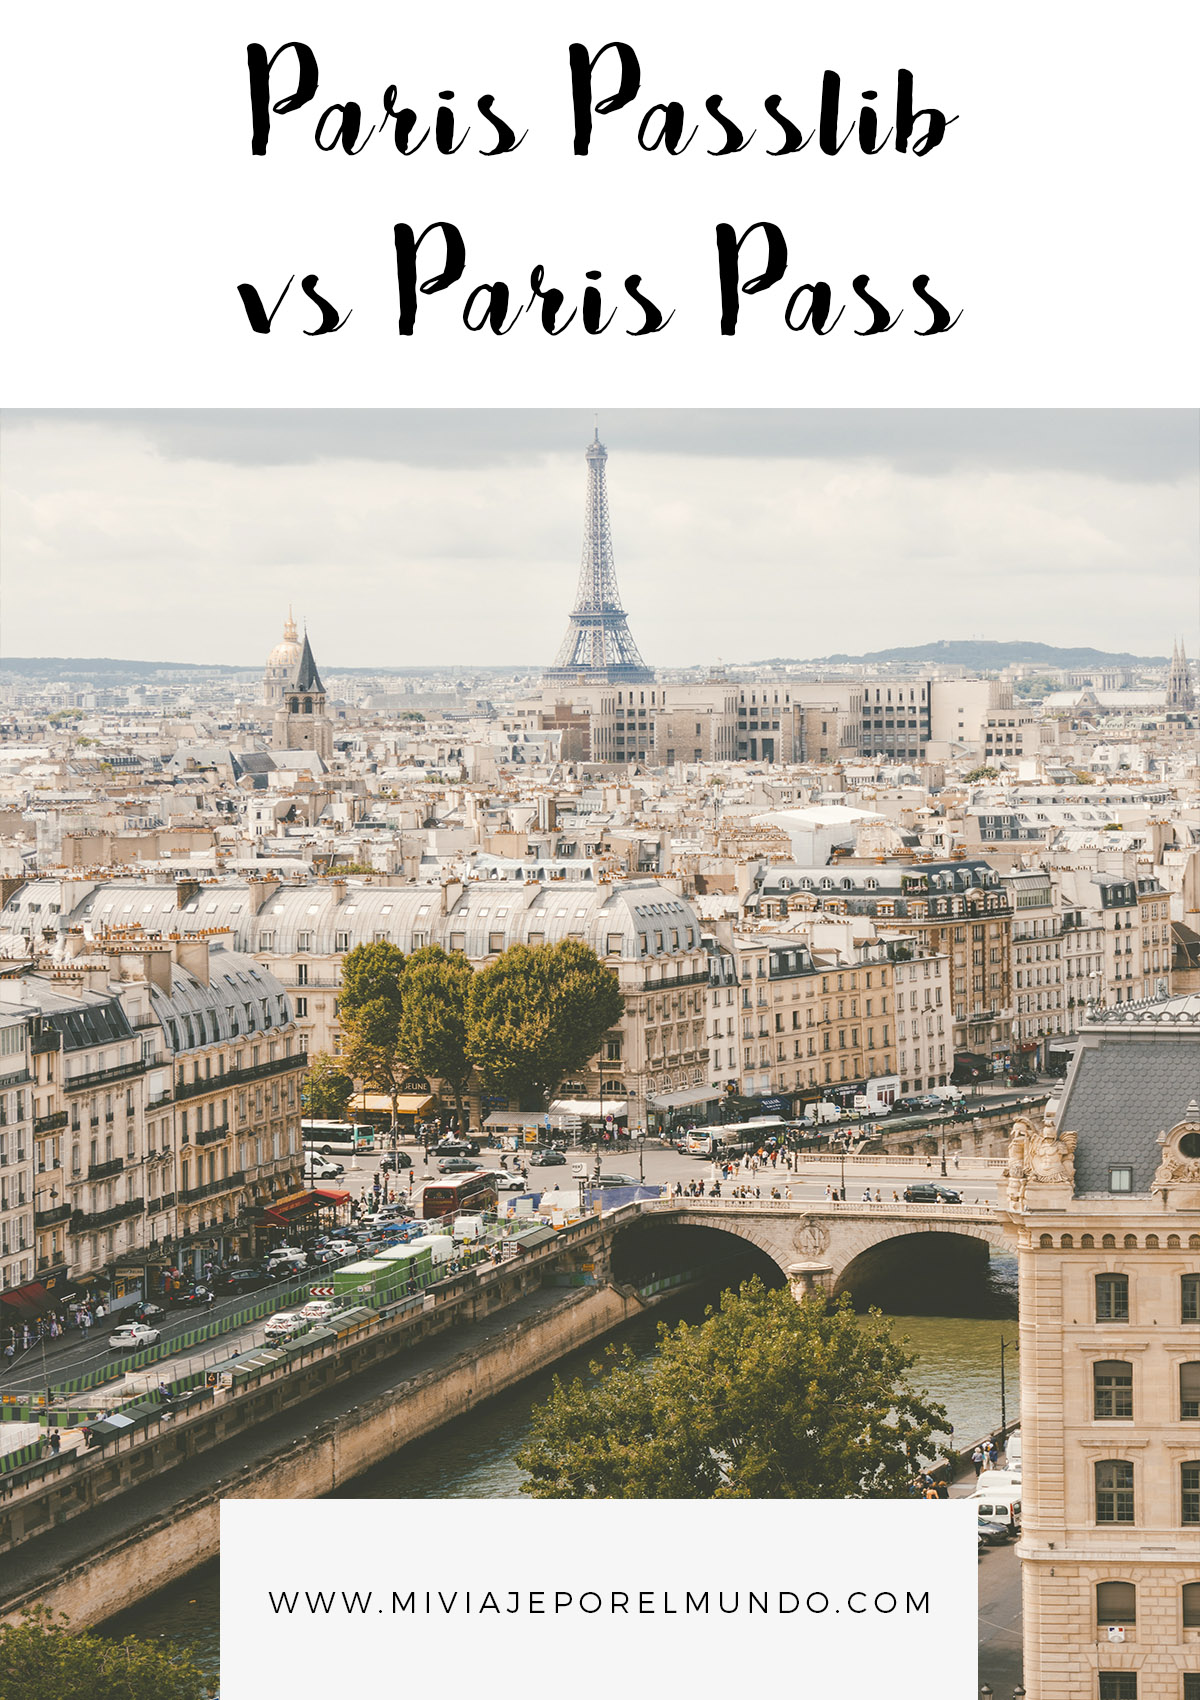 paris pass vs paris lib cual conviene